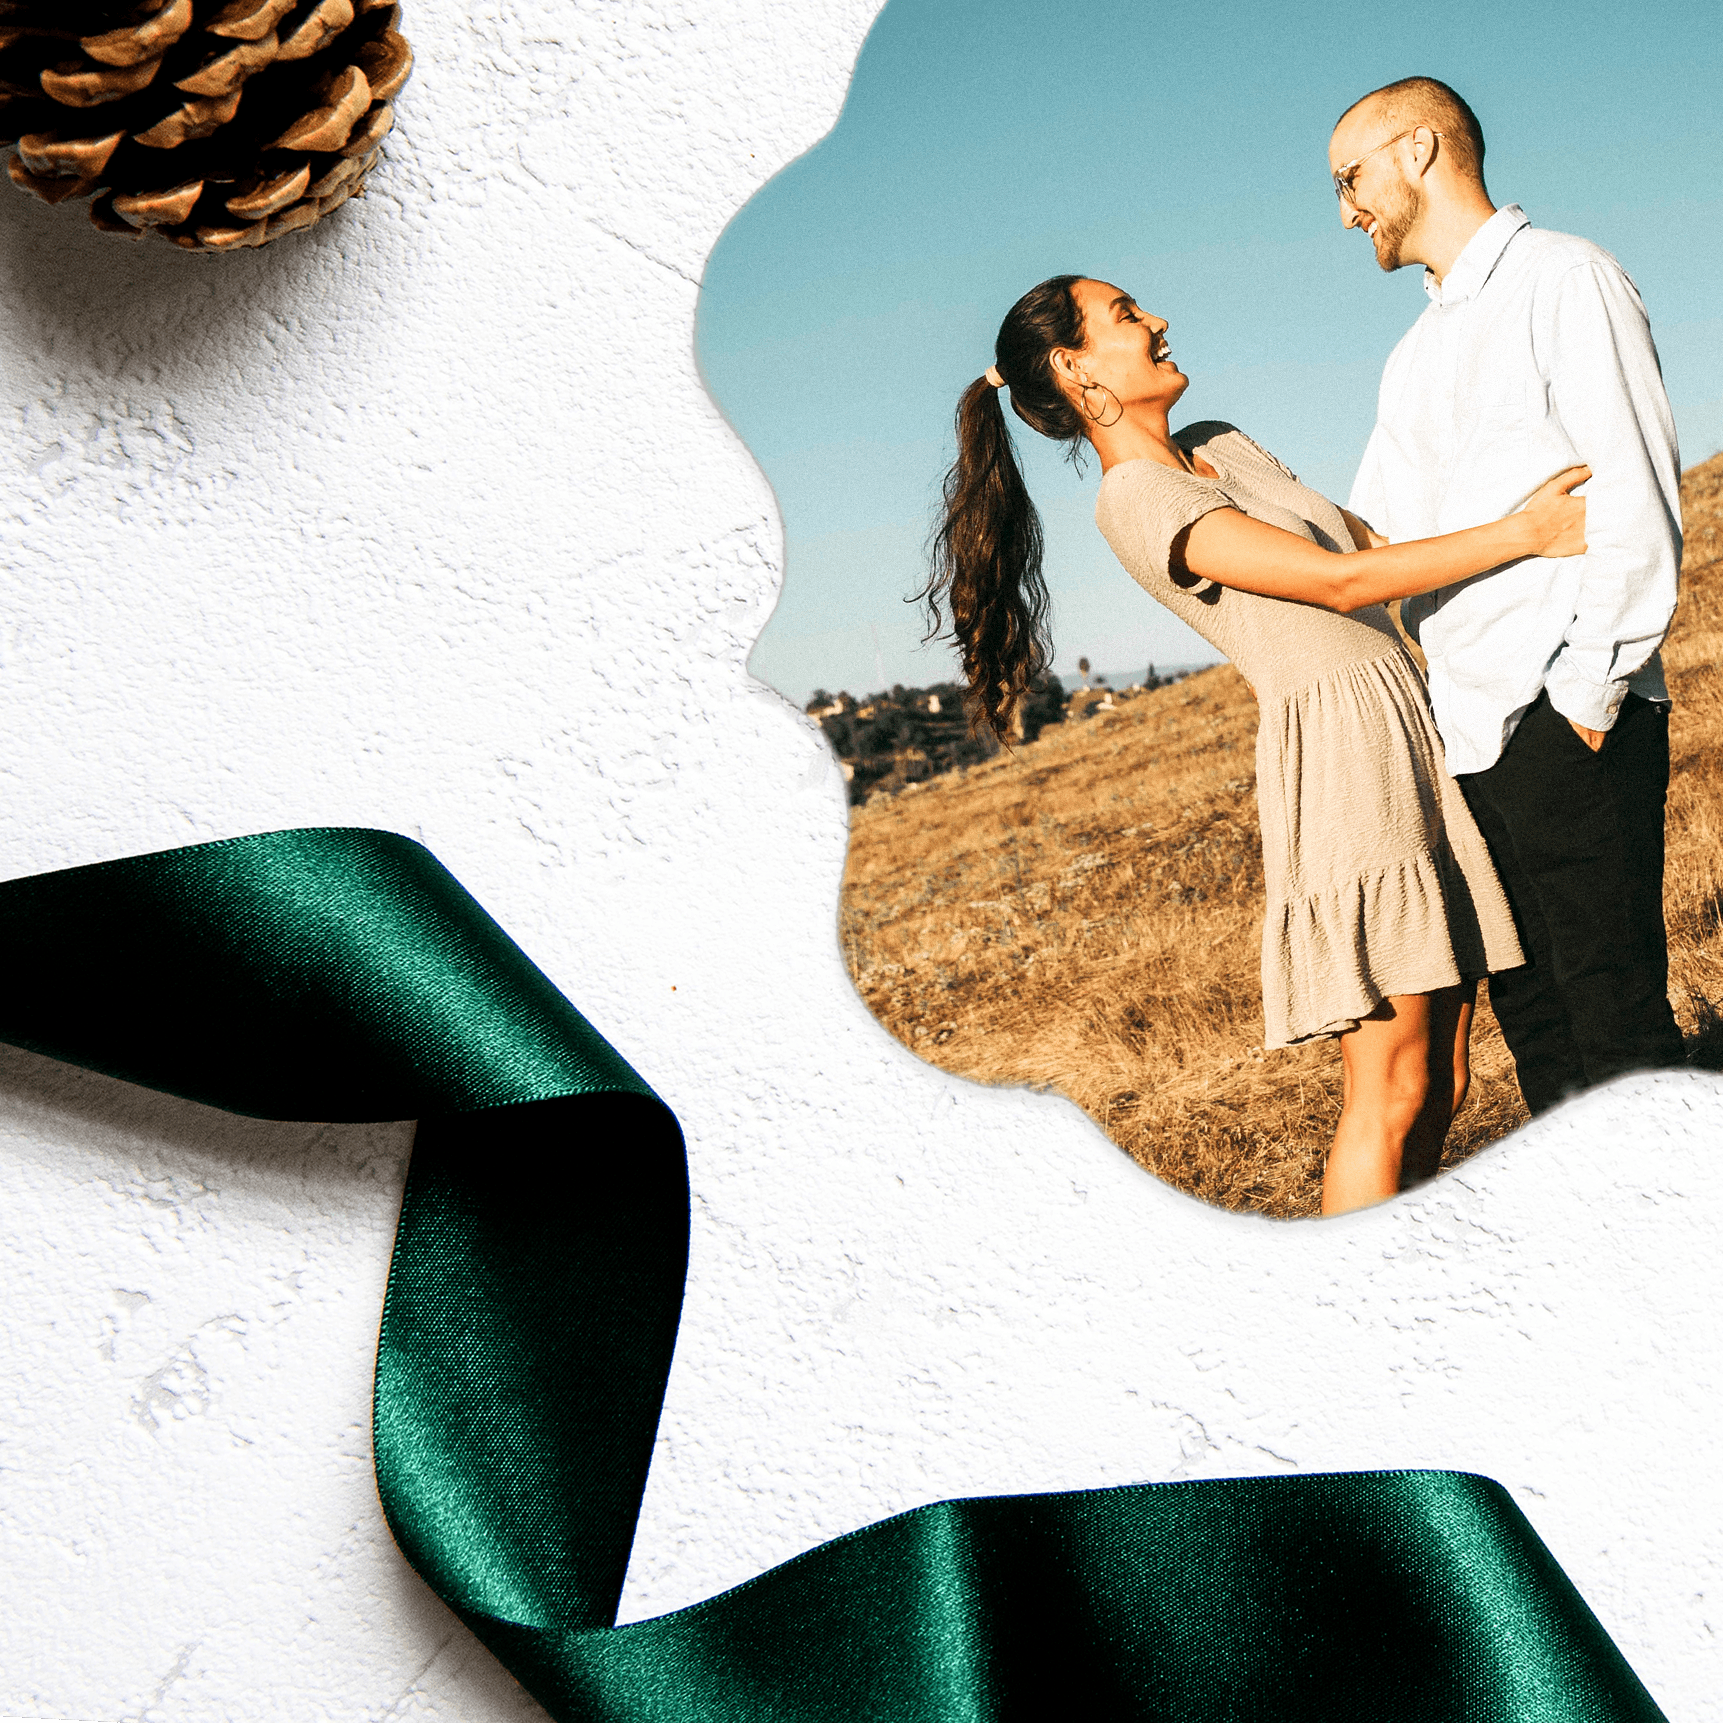 Order a custom photo ornament as a holiday gift